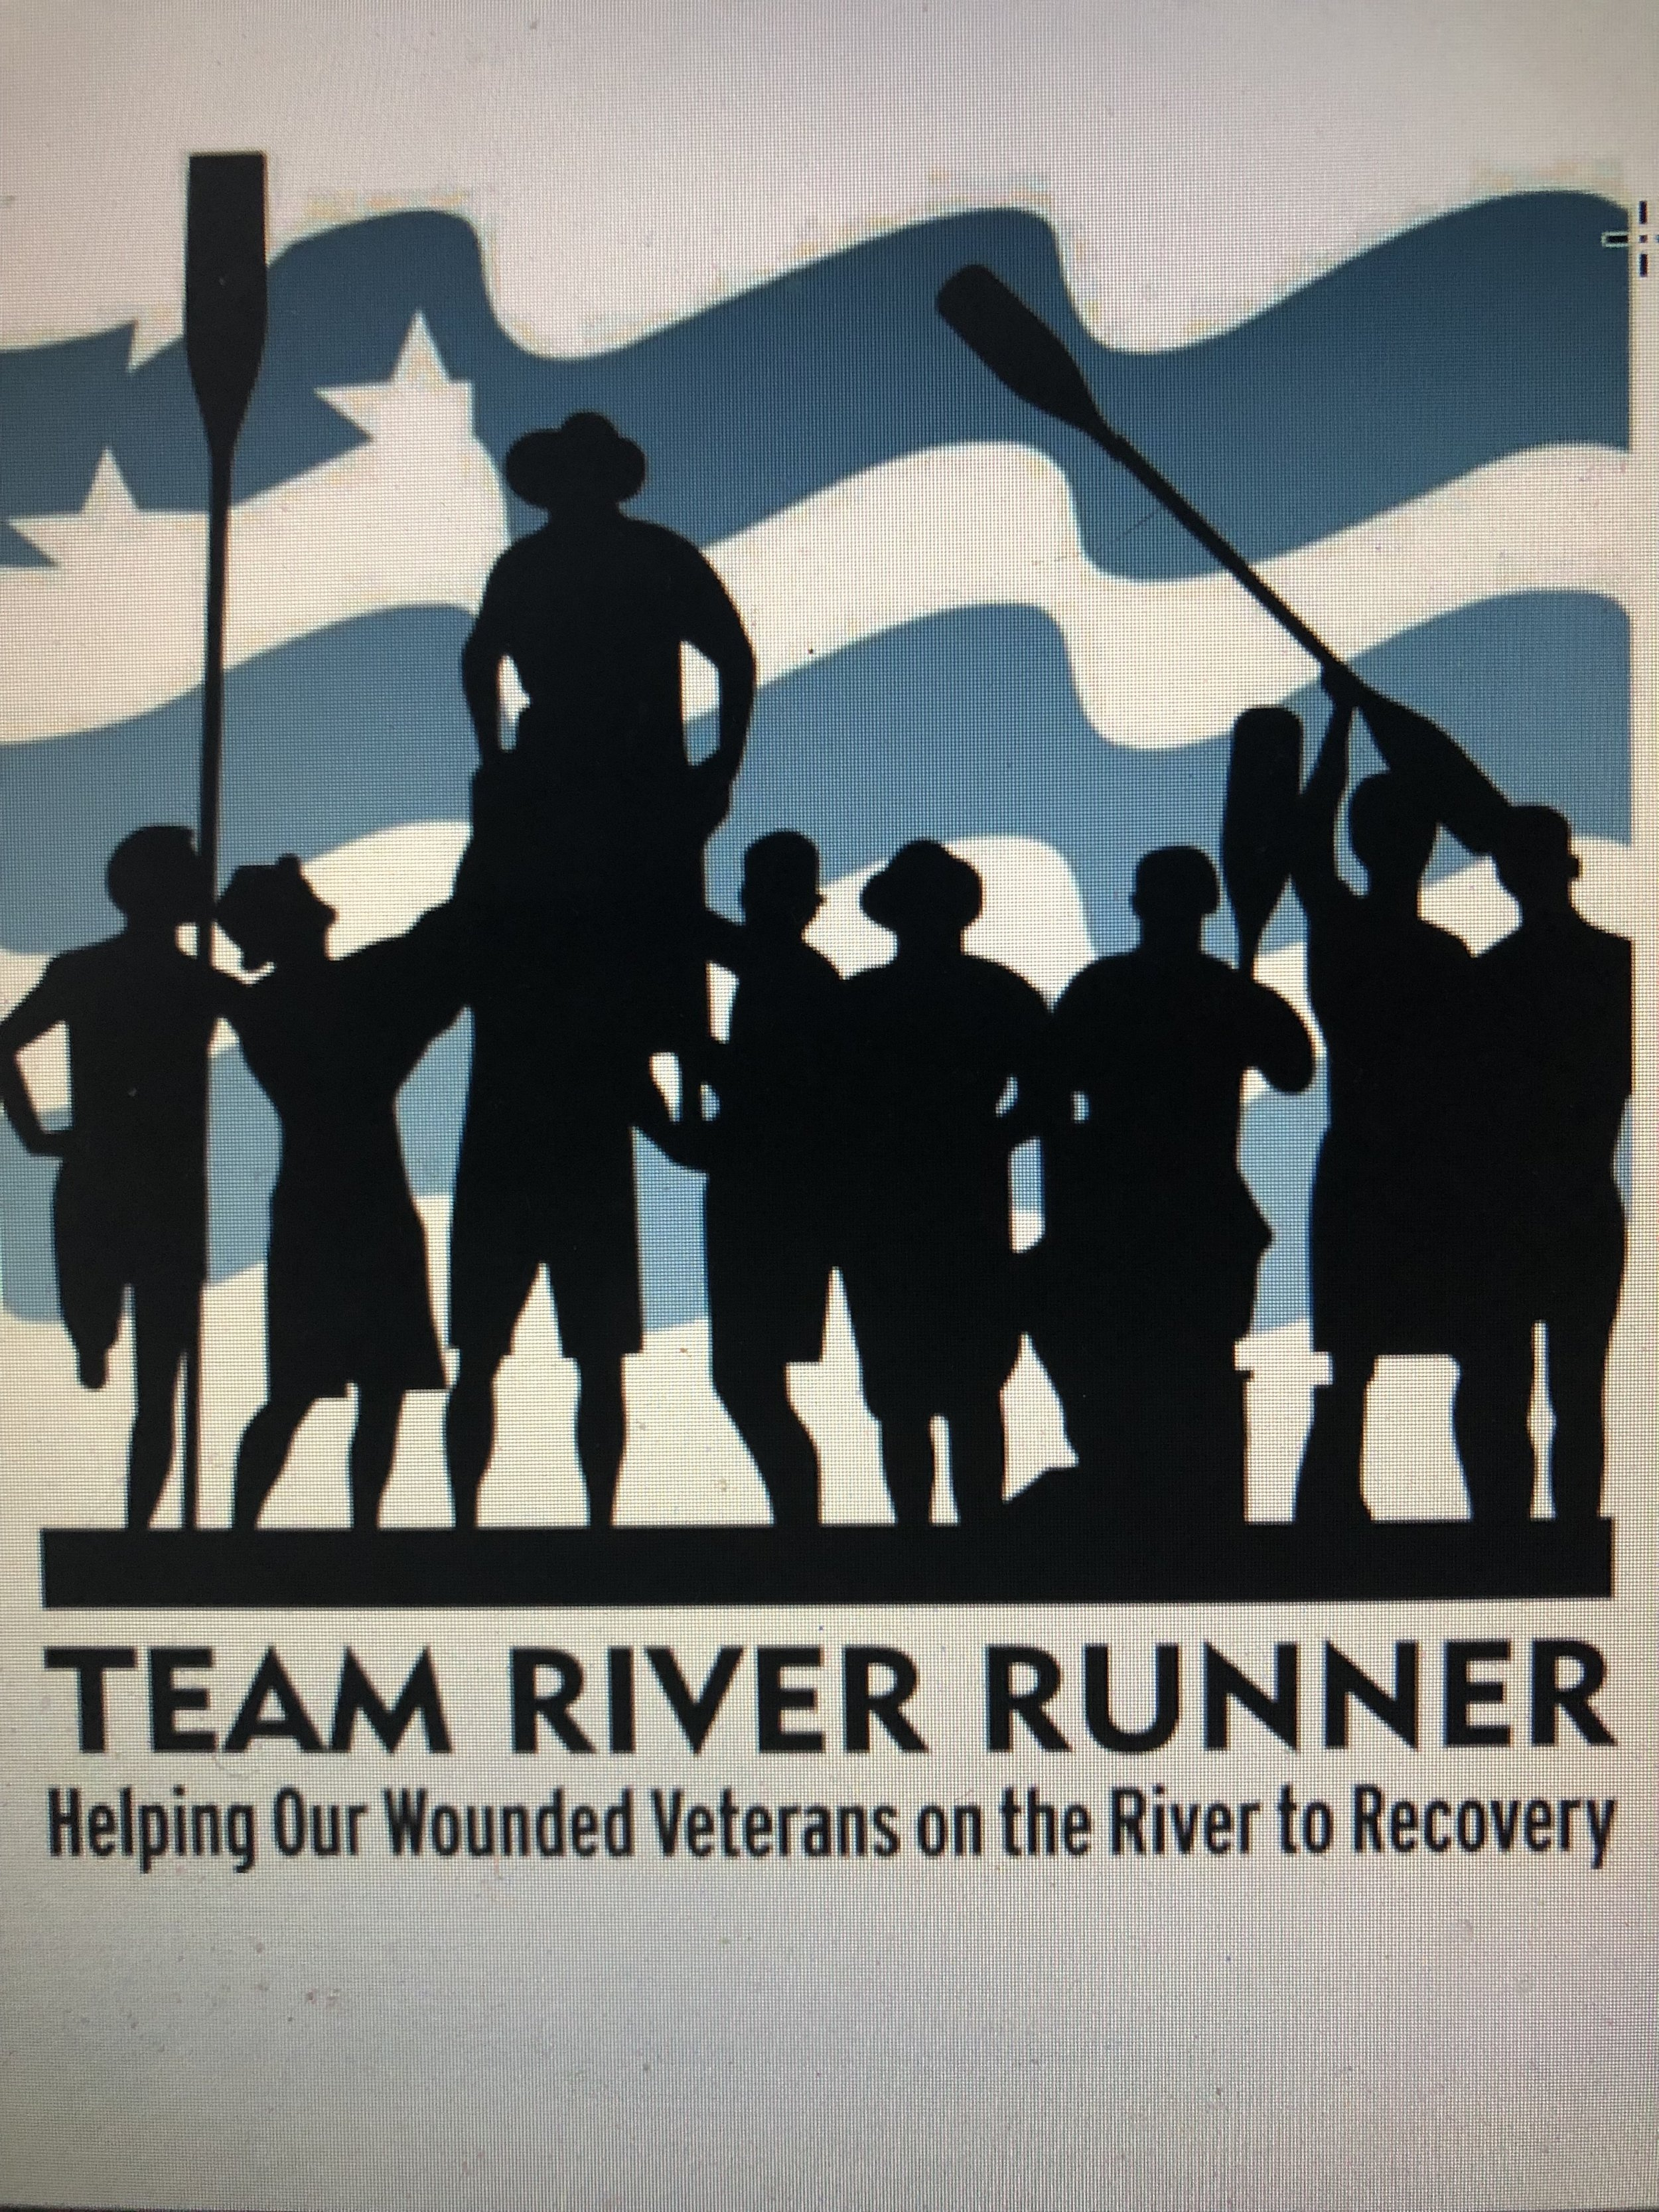 2019 PR Foundation is supporting the Chicago chapter of Team River Runner in their mission of helping wounded military veterans on the river to recovery.